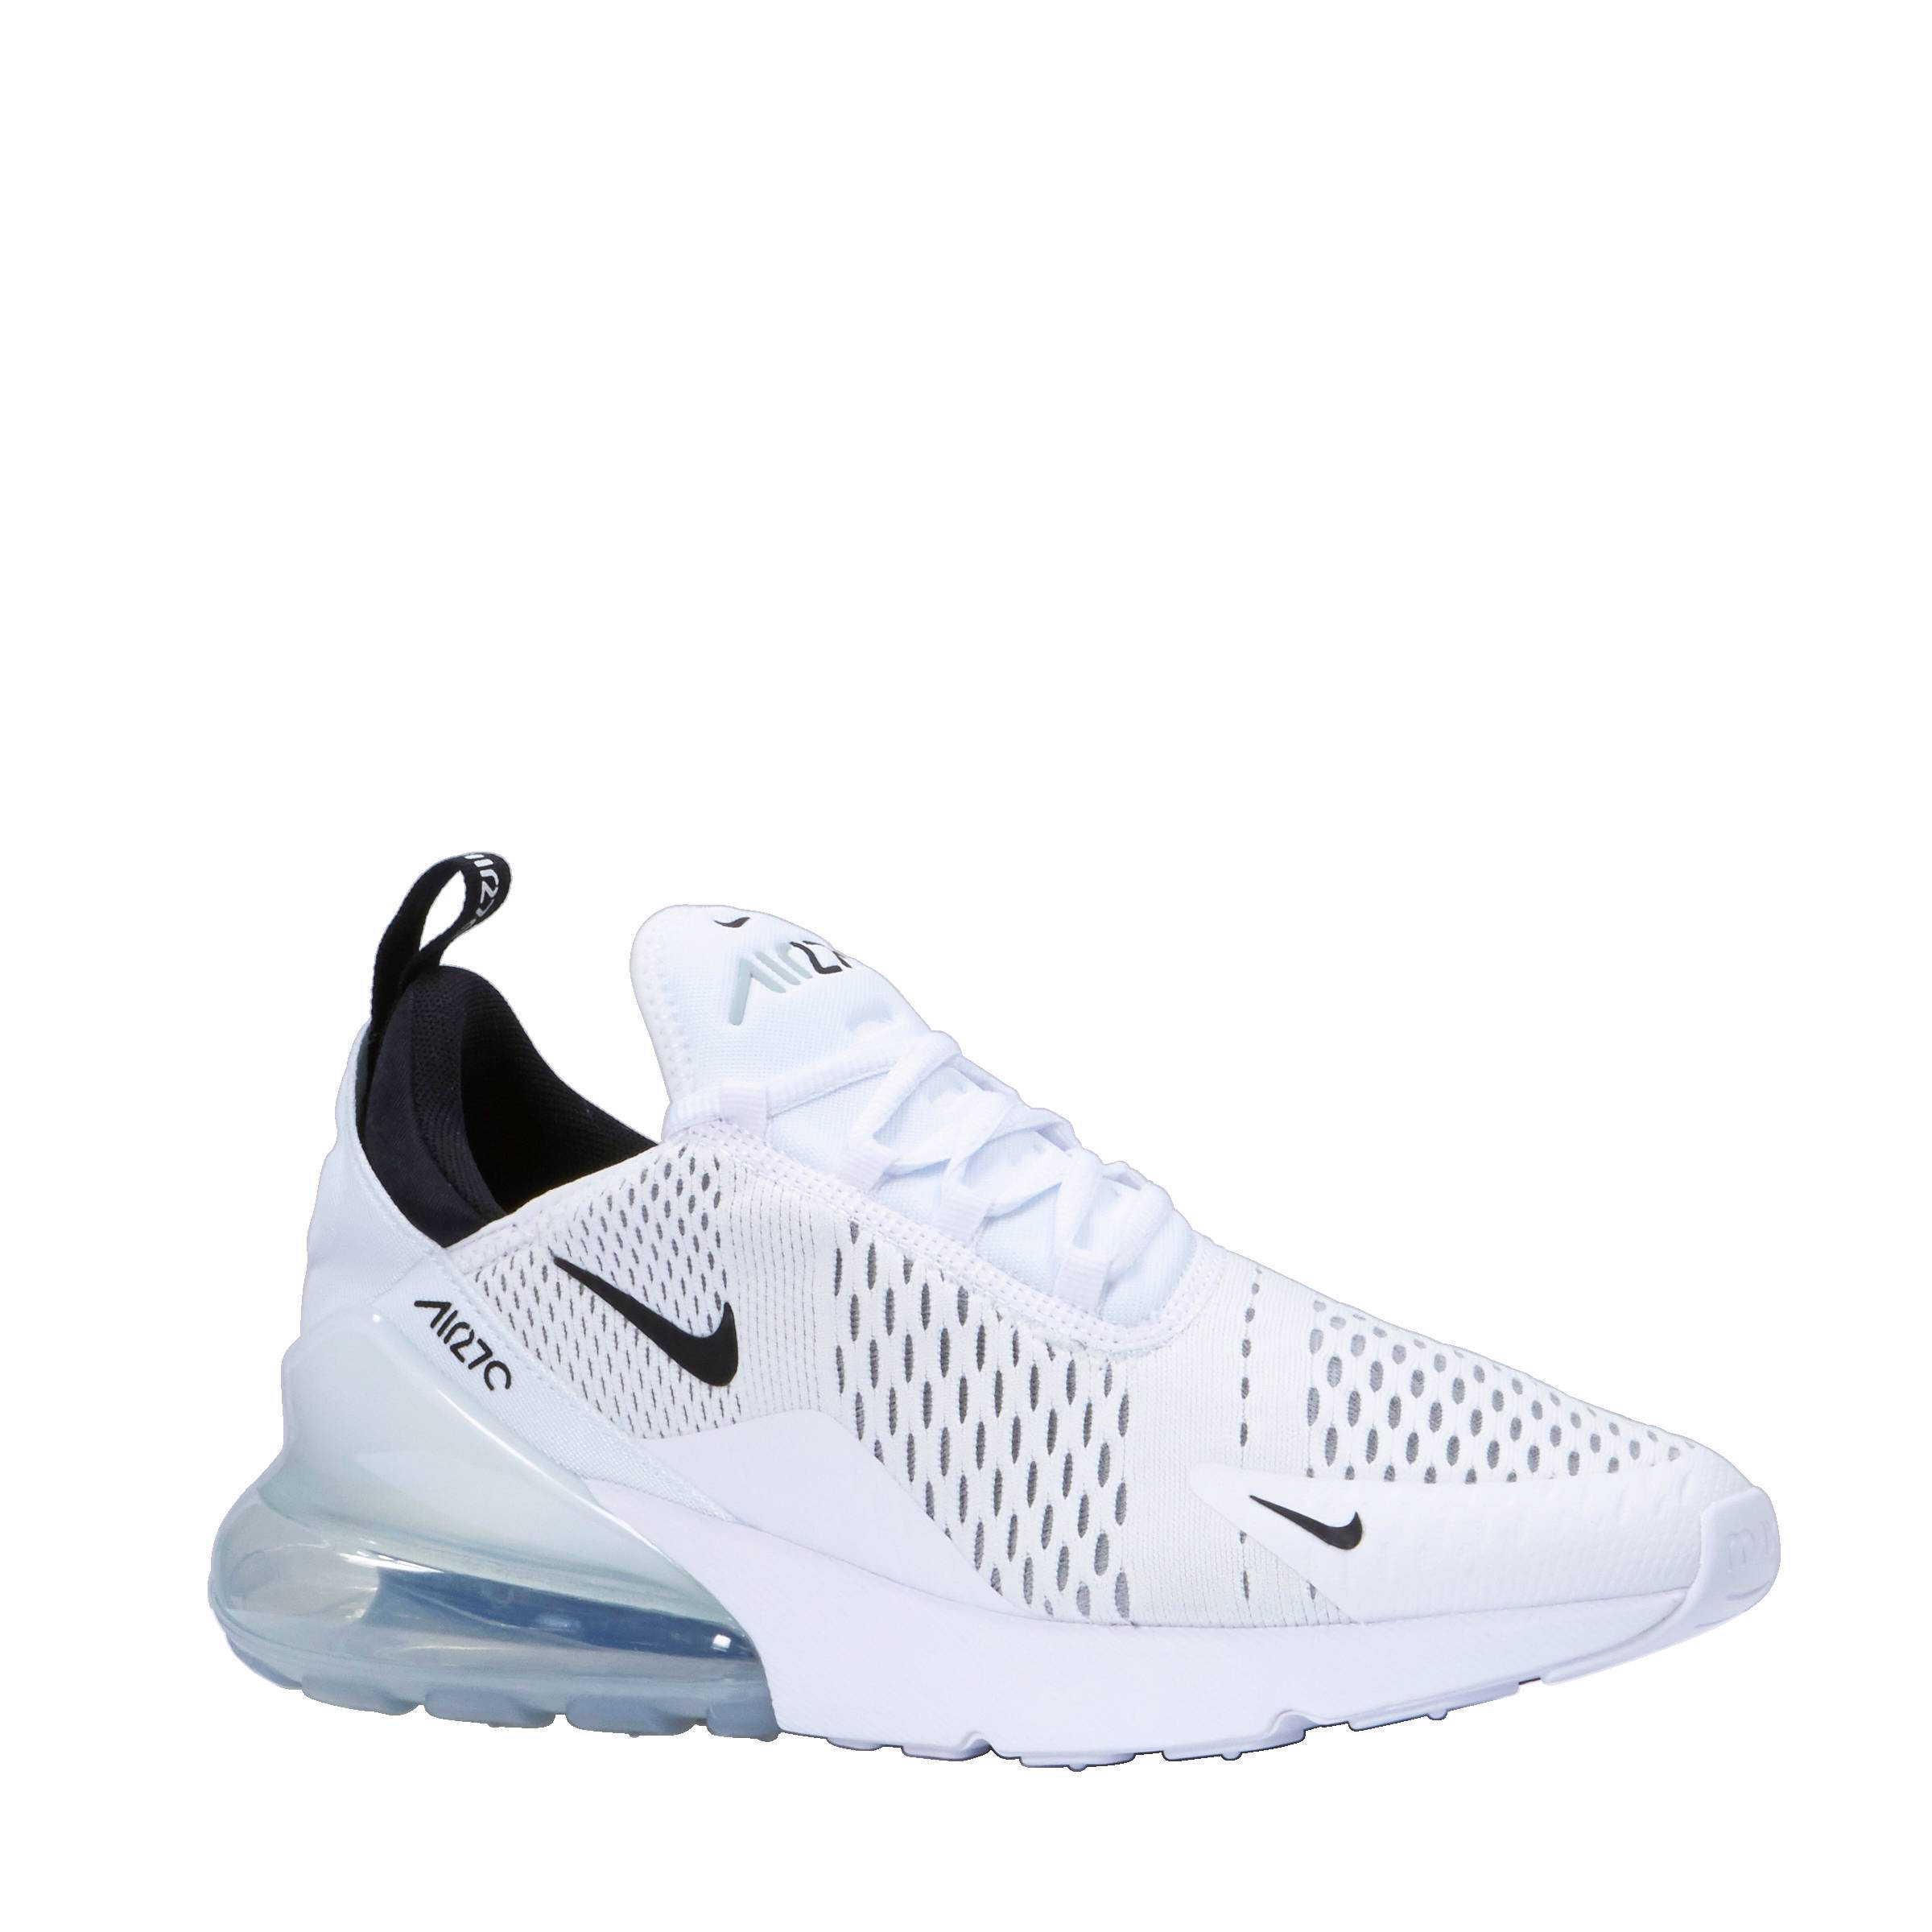 nike air max wit zwart dames